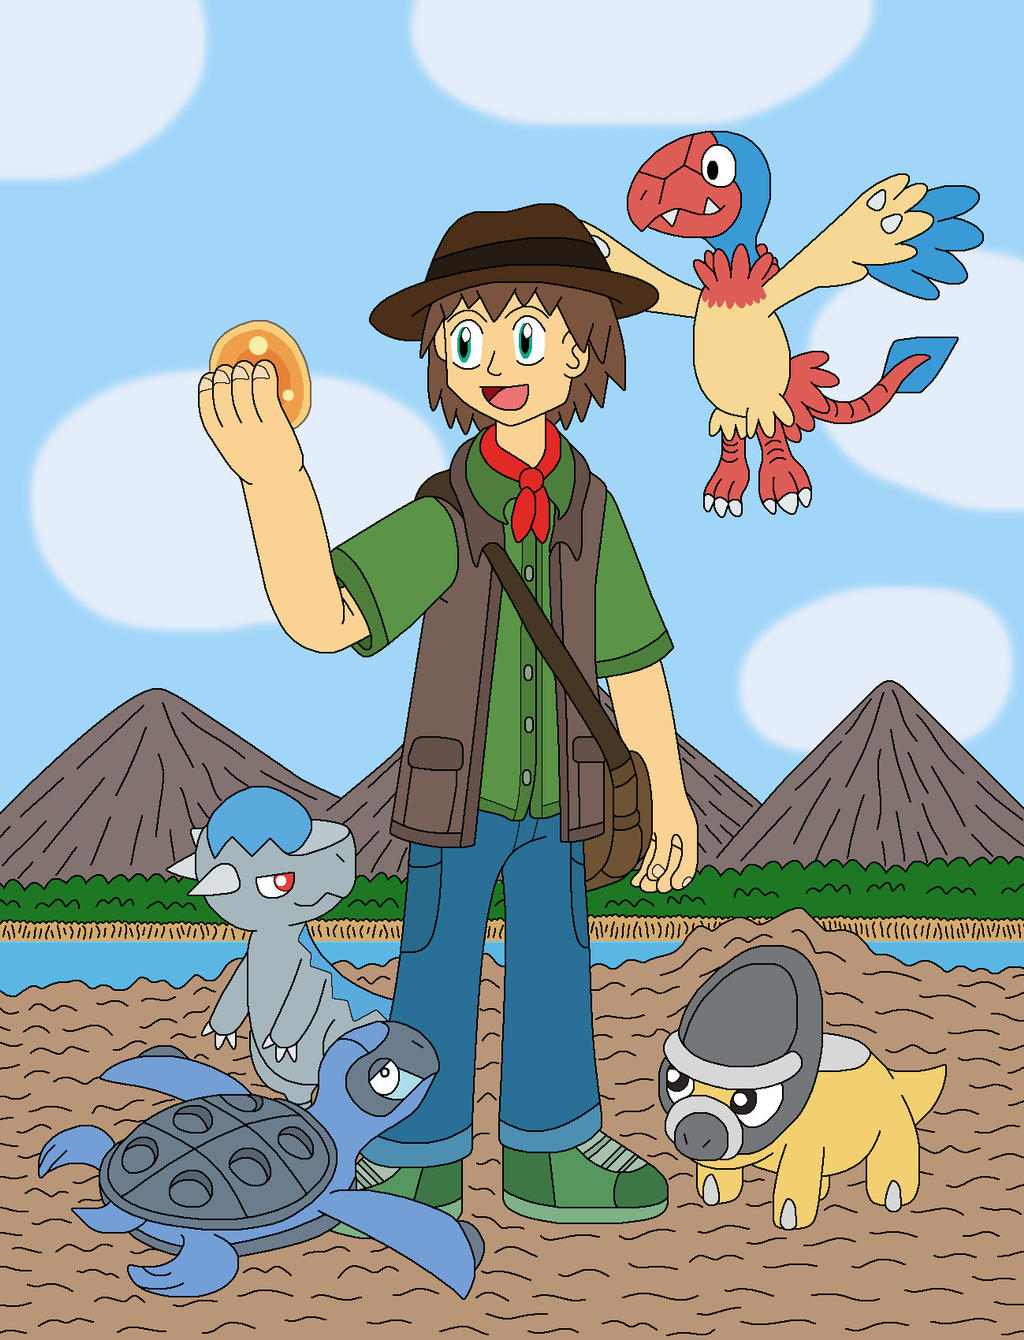 Paleontology Trainer and his Fossil Pokemon by MCsaurus on